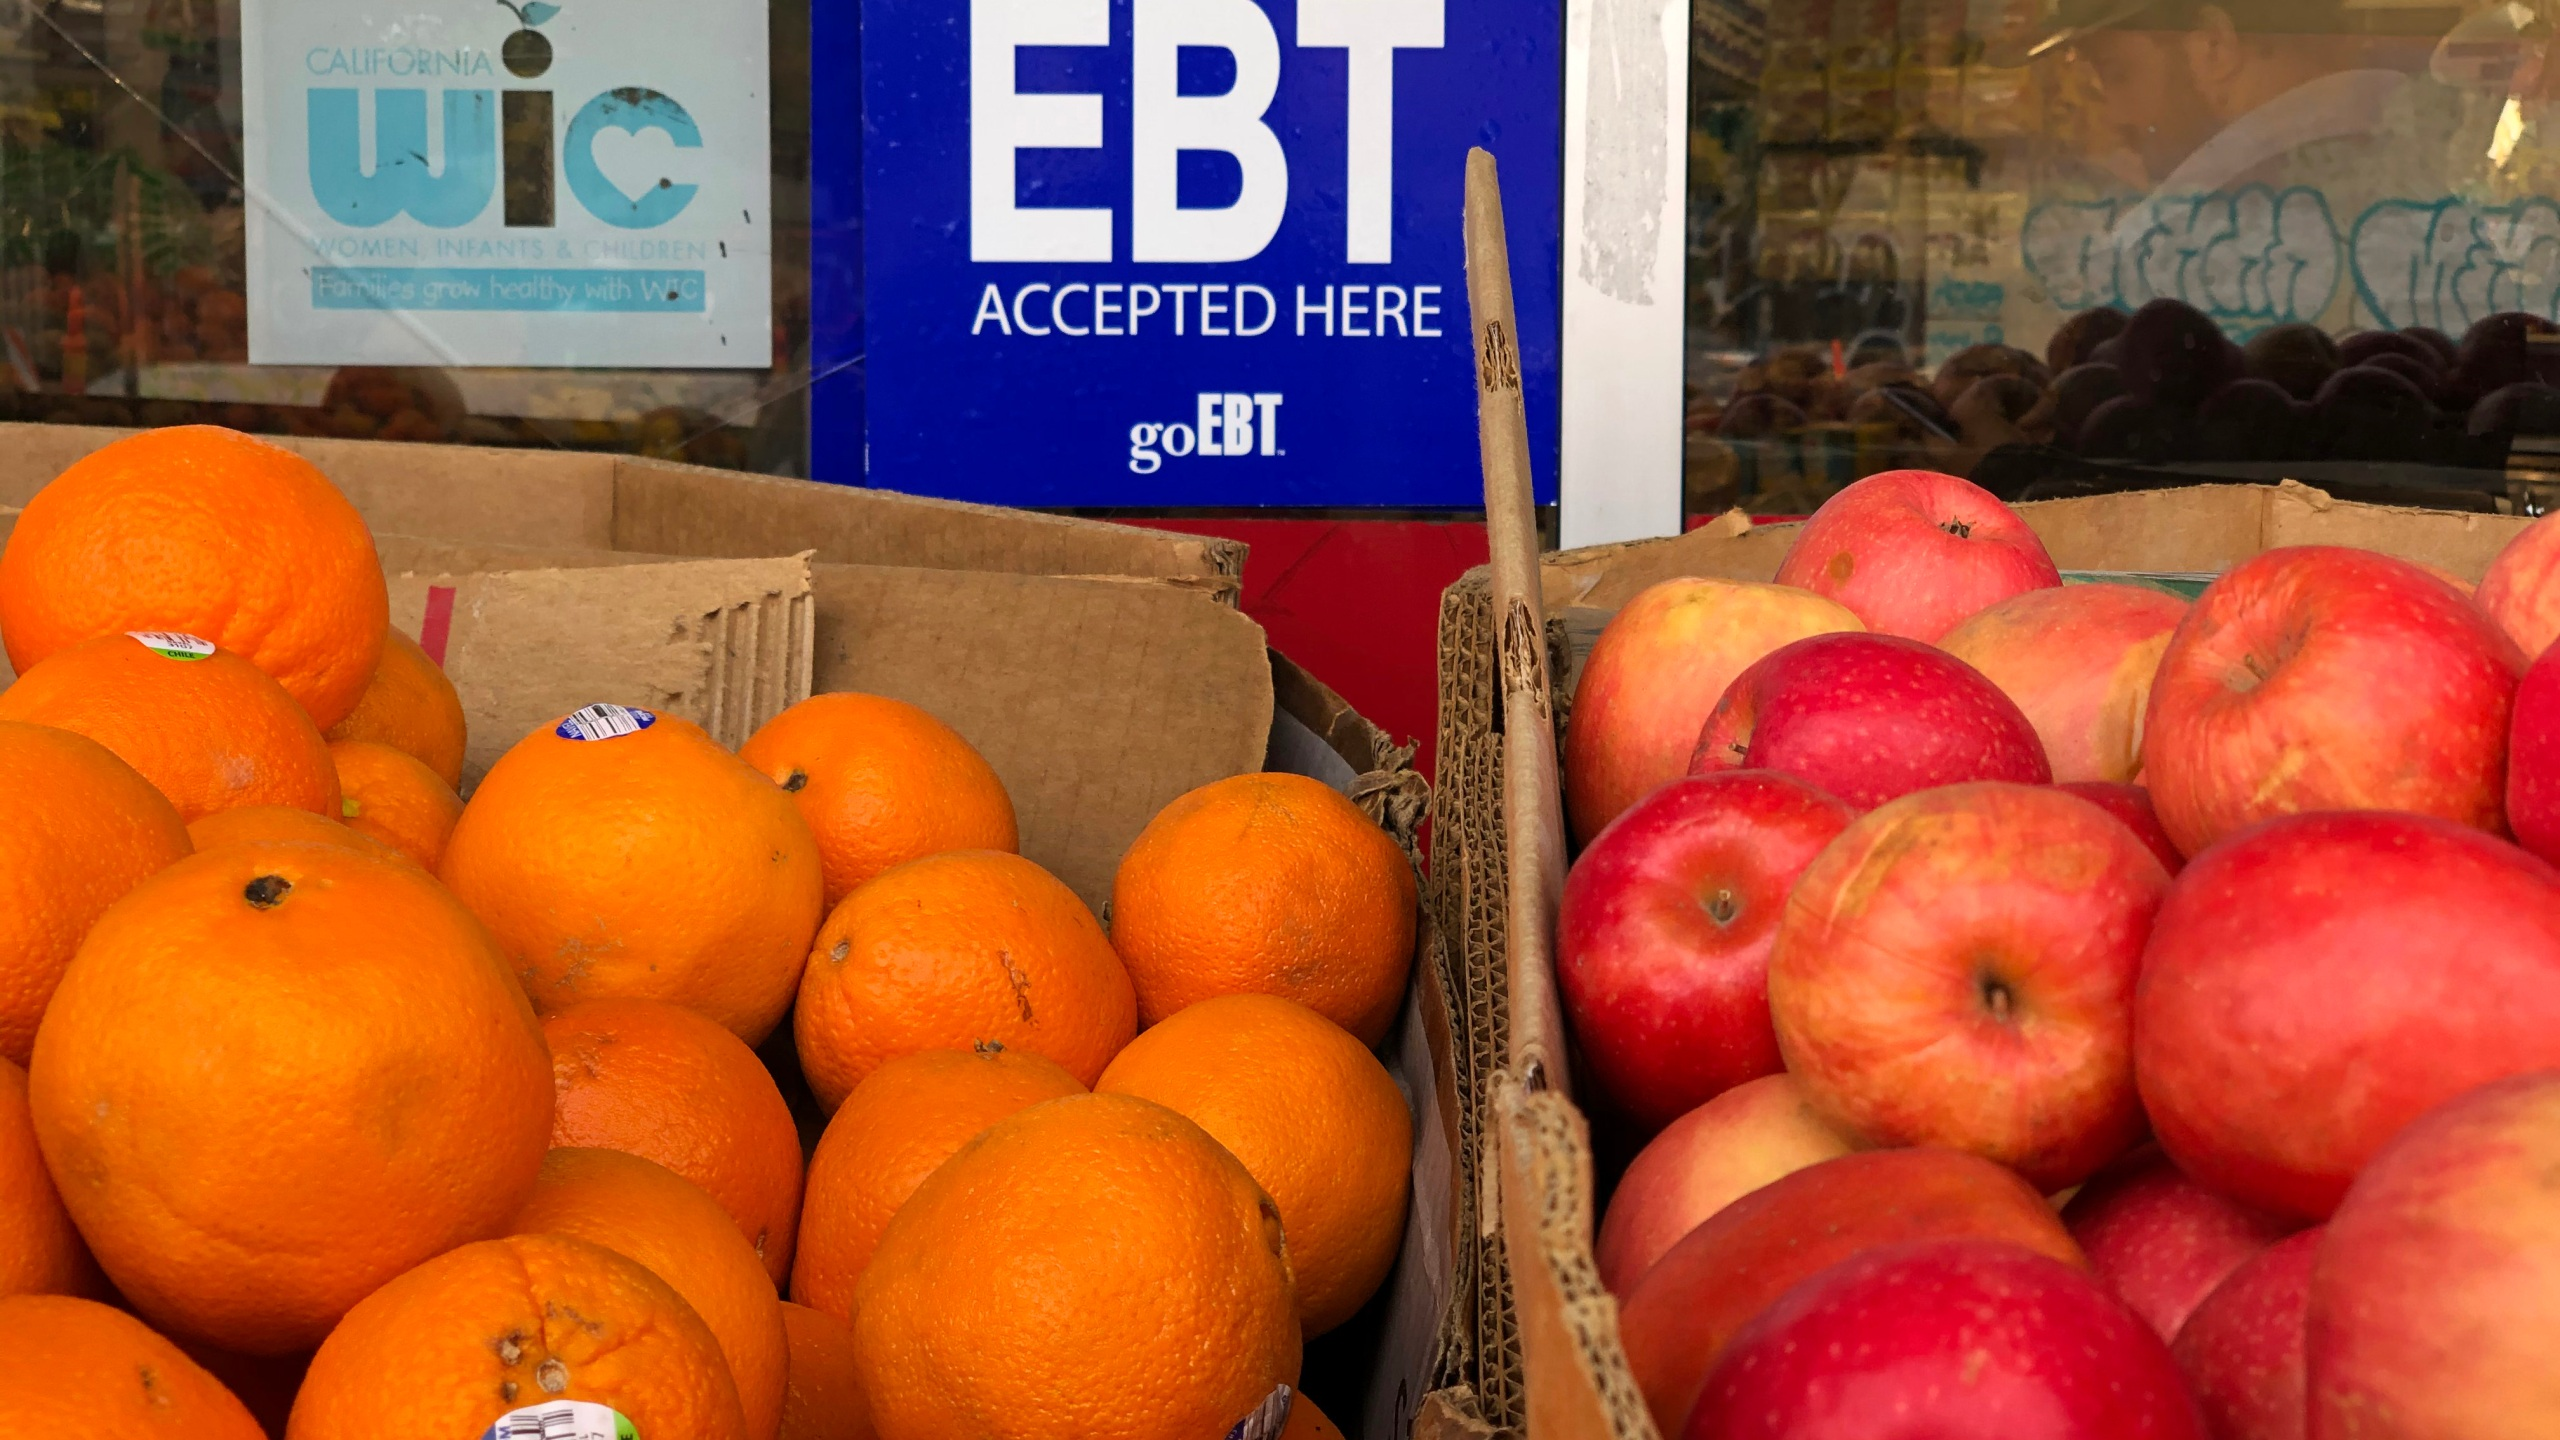 A sign noting the acceptance of electronic benefit transfer (EBT) cards that are used by state welfare departments to issue benefits is displayed at a grocery store on Dec. 4, 2019, in Oakland, Calif. (Justin Sullivan/Getty Images)